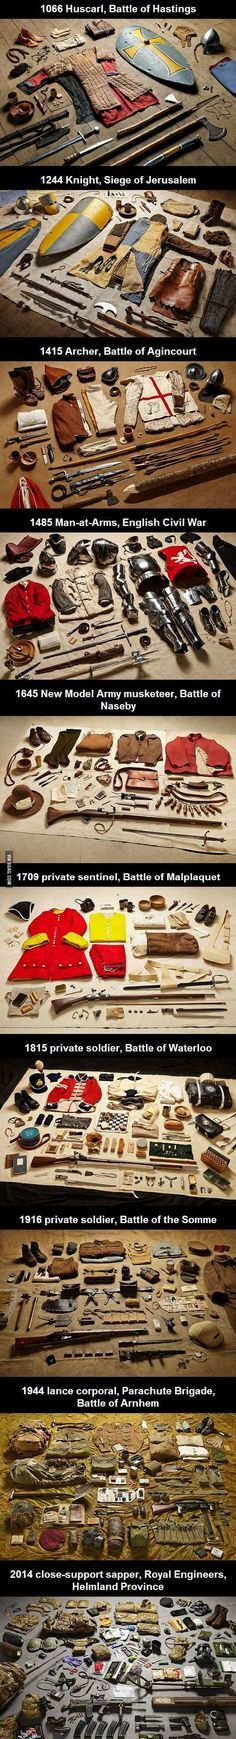 Historical Military Uniforms from the last 1,000 years (good medieval sampling):